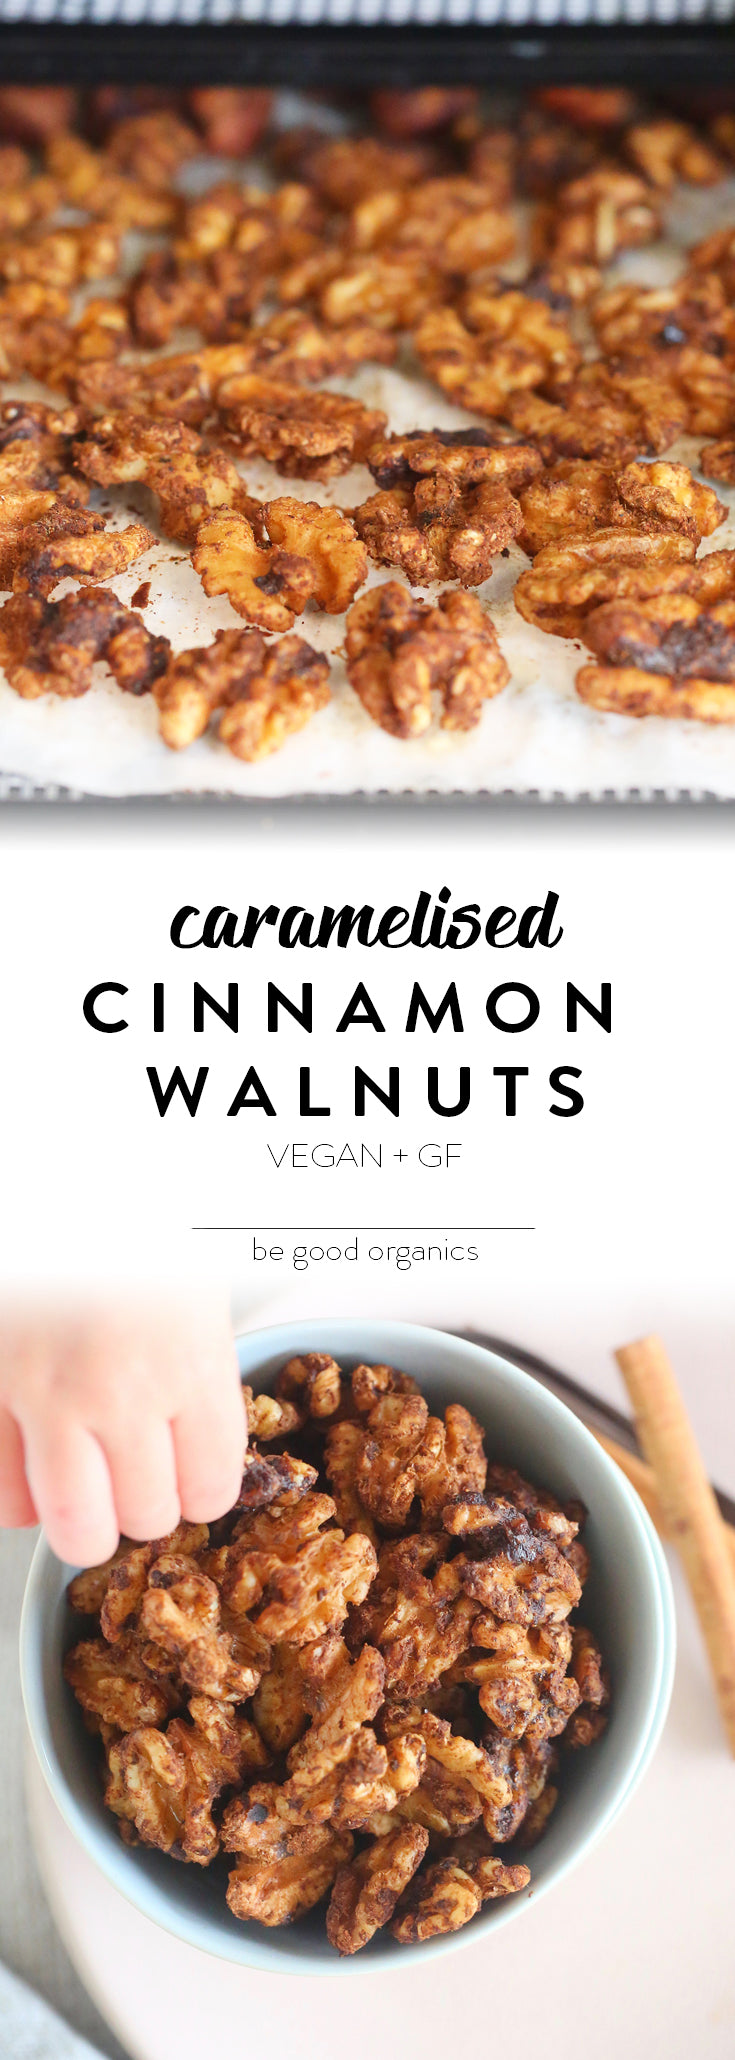 Caramelised Cinnamon Walnuts - Be Good Organics